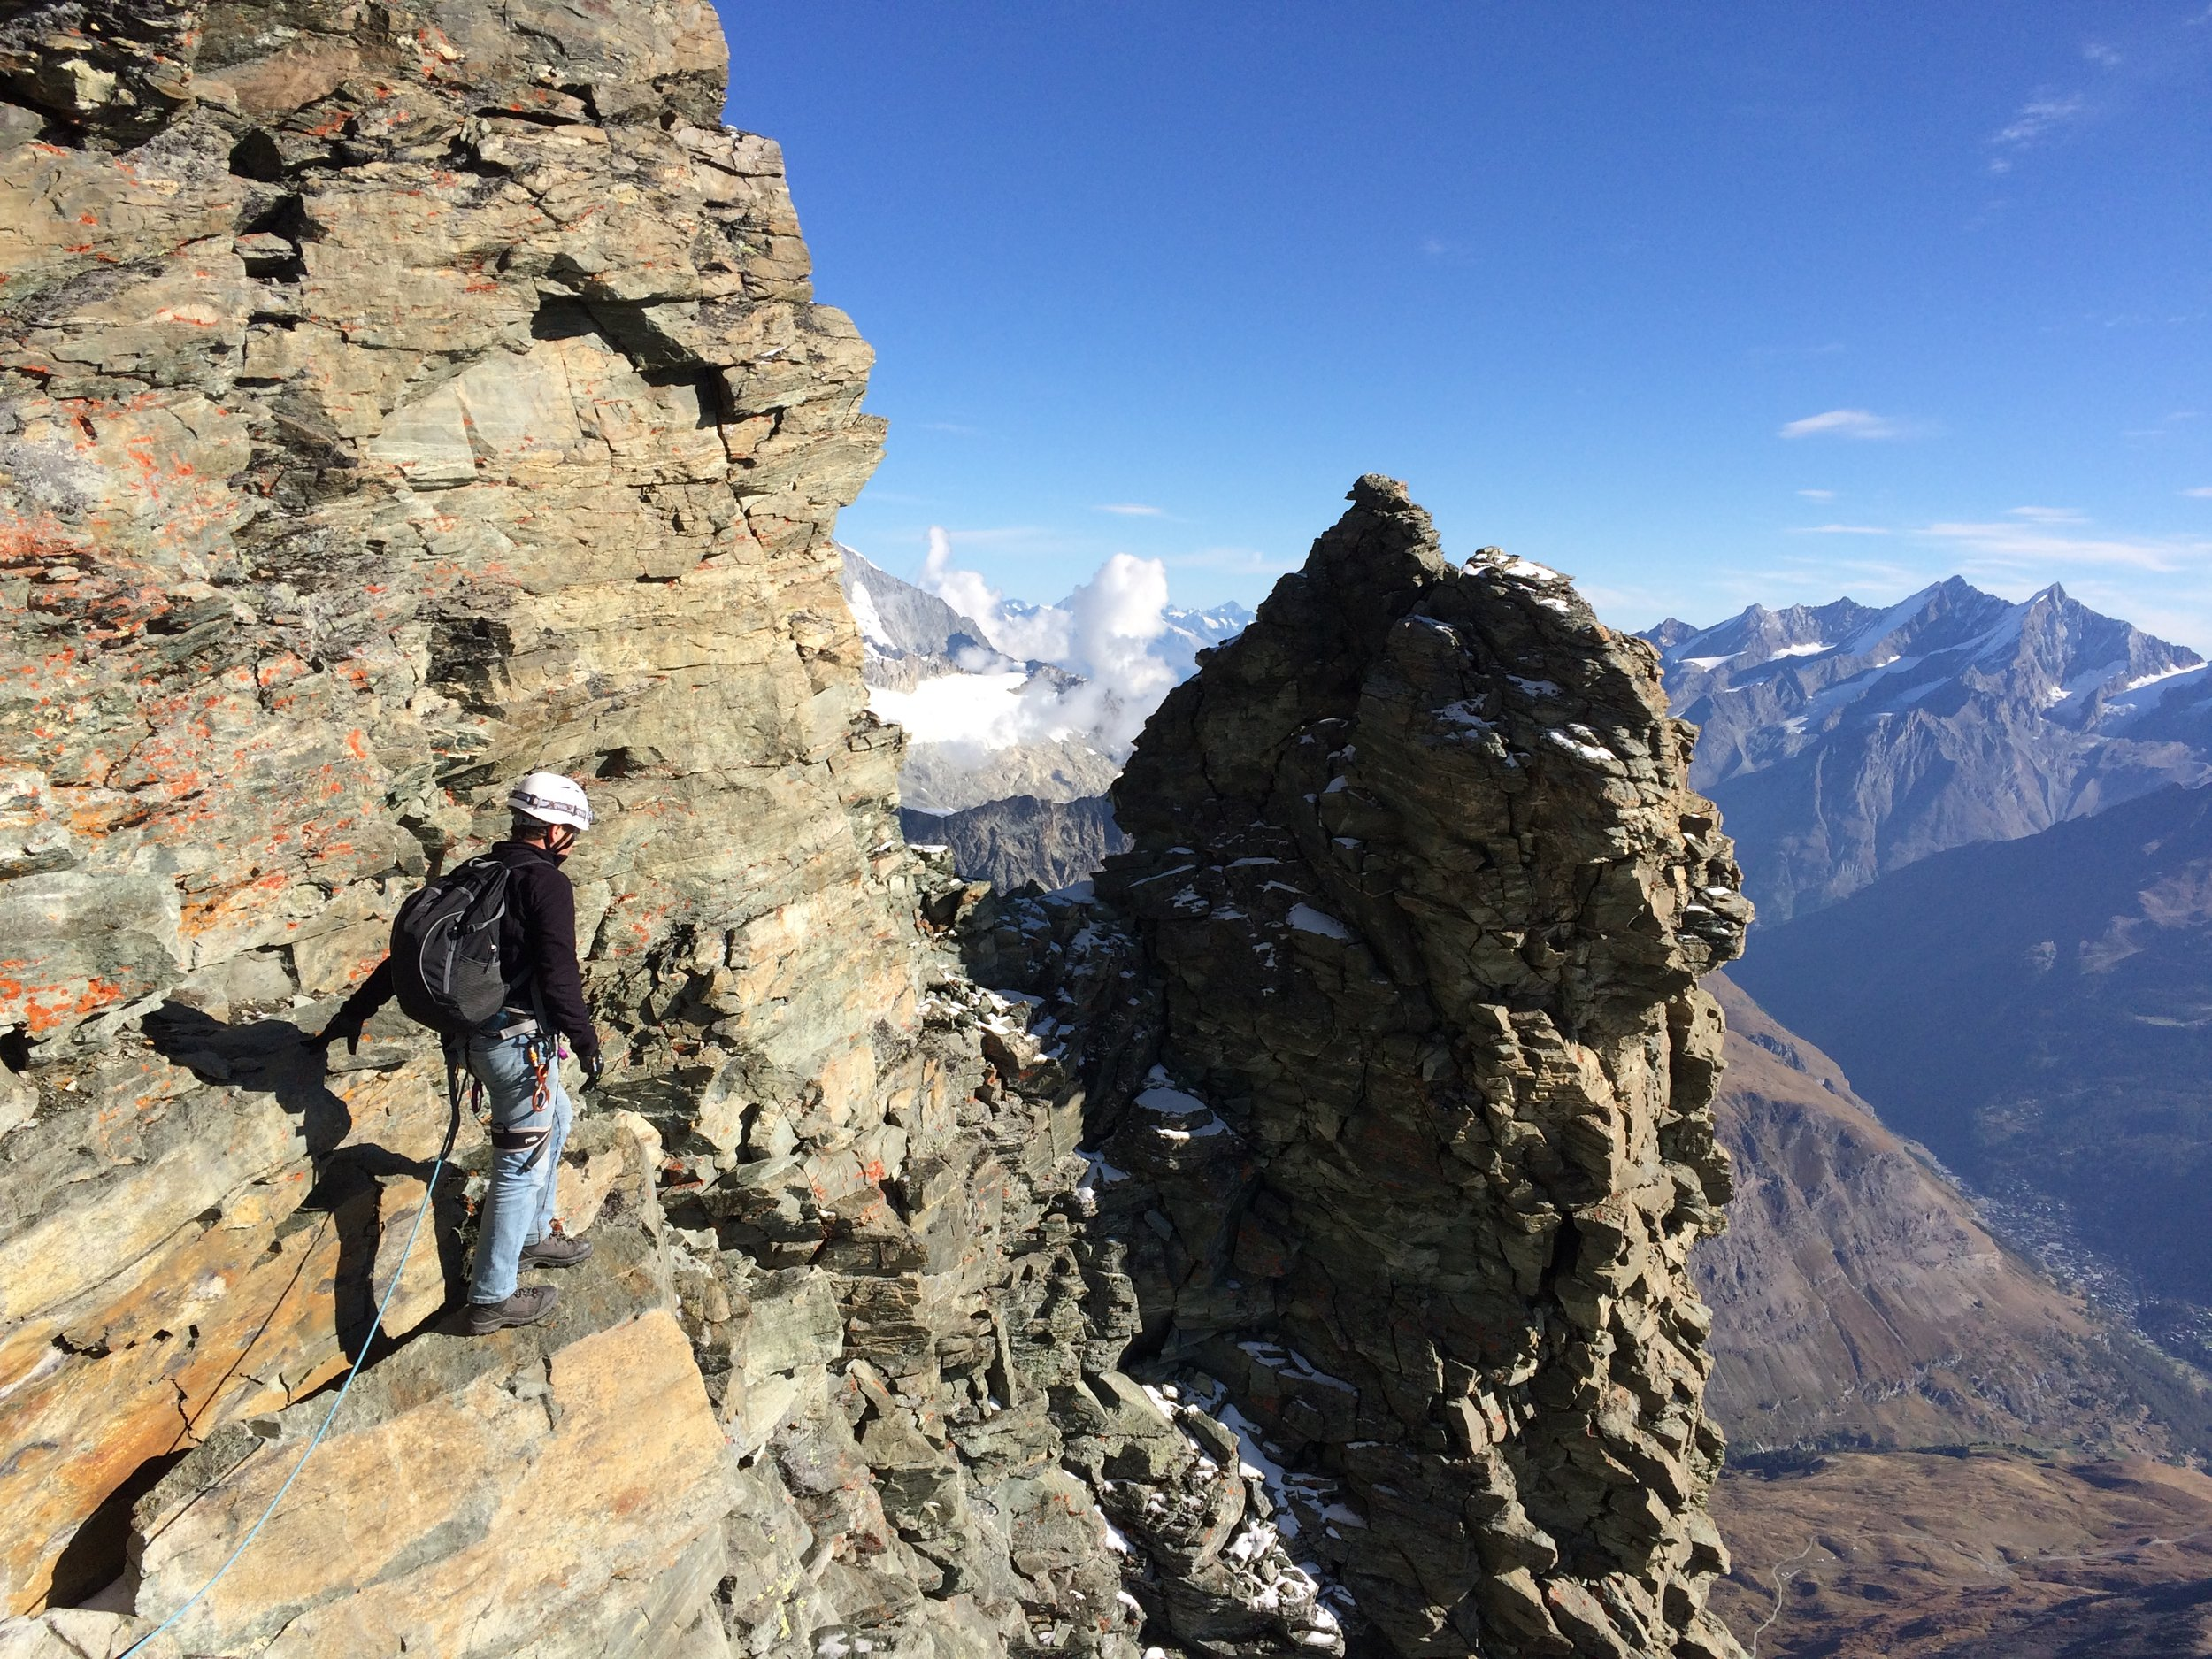 Commencing the descent from the Solvay hut. Hard to believe, but the way down is often just as hard as the way up!